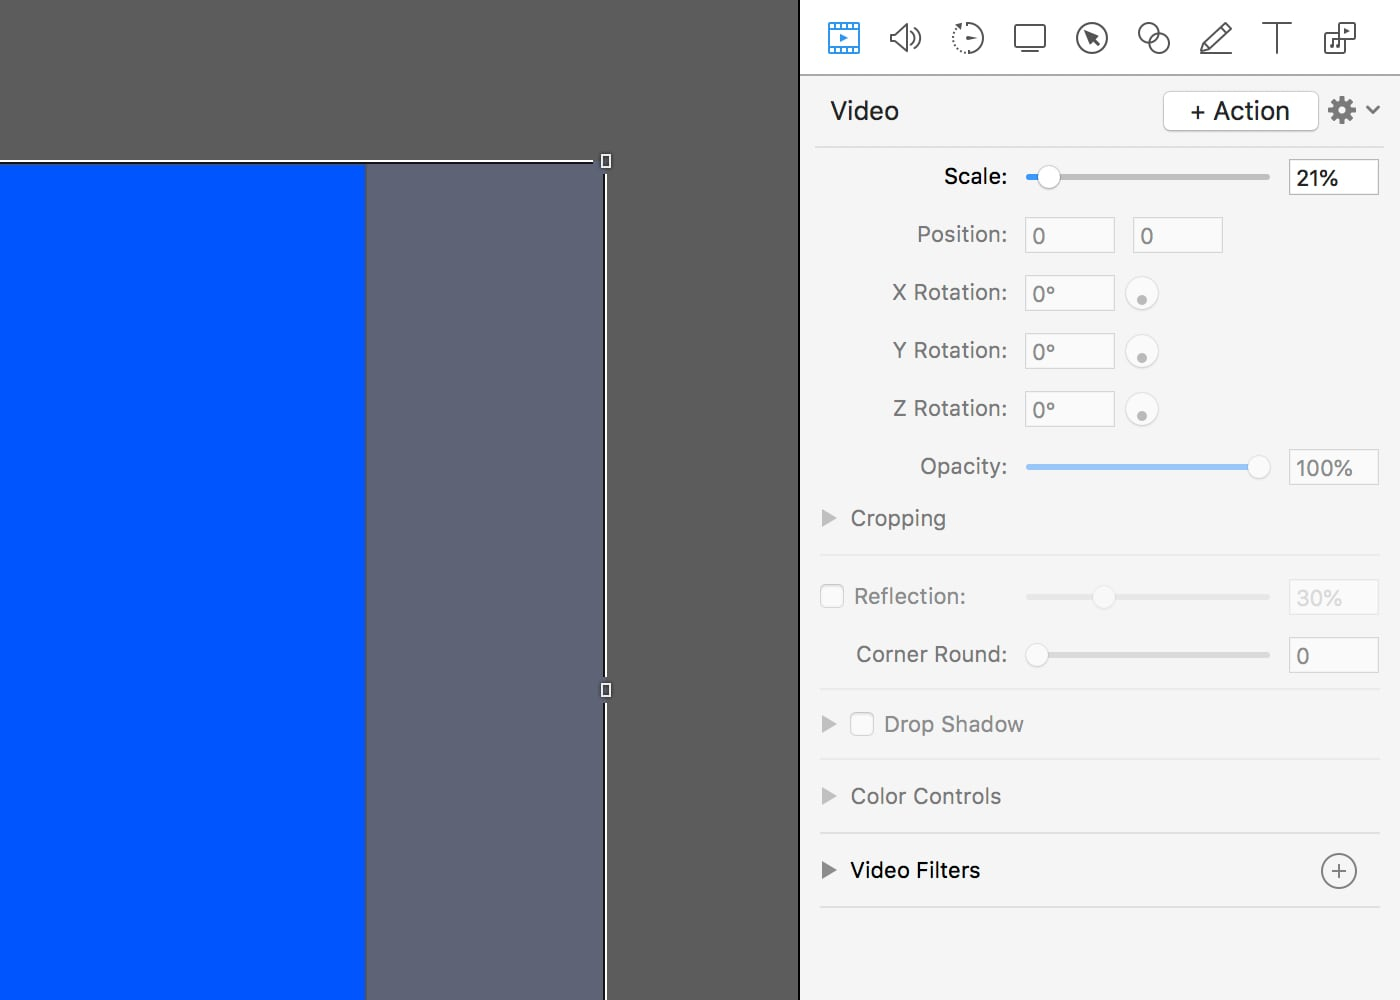 Scale your clip to fit the document size using the scale slider.